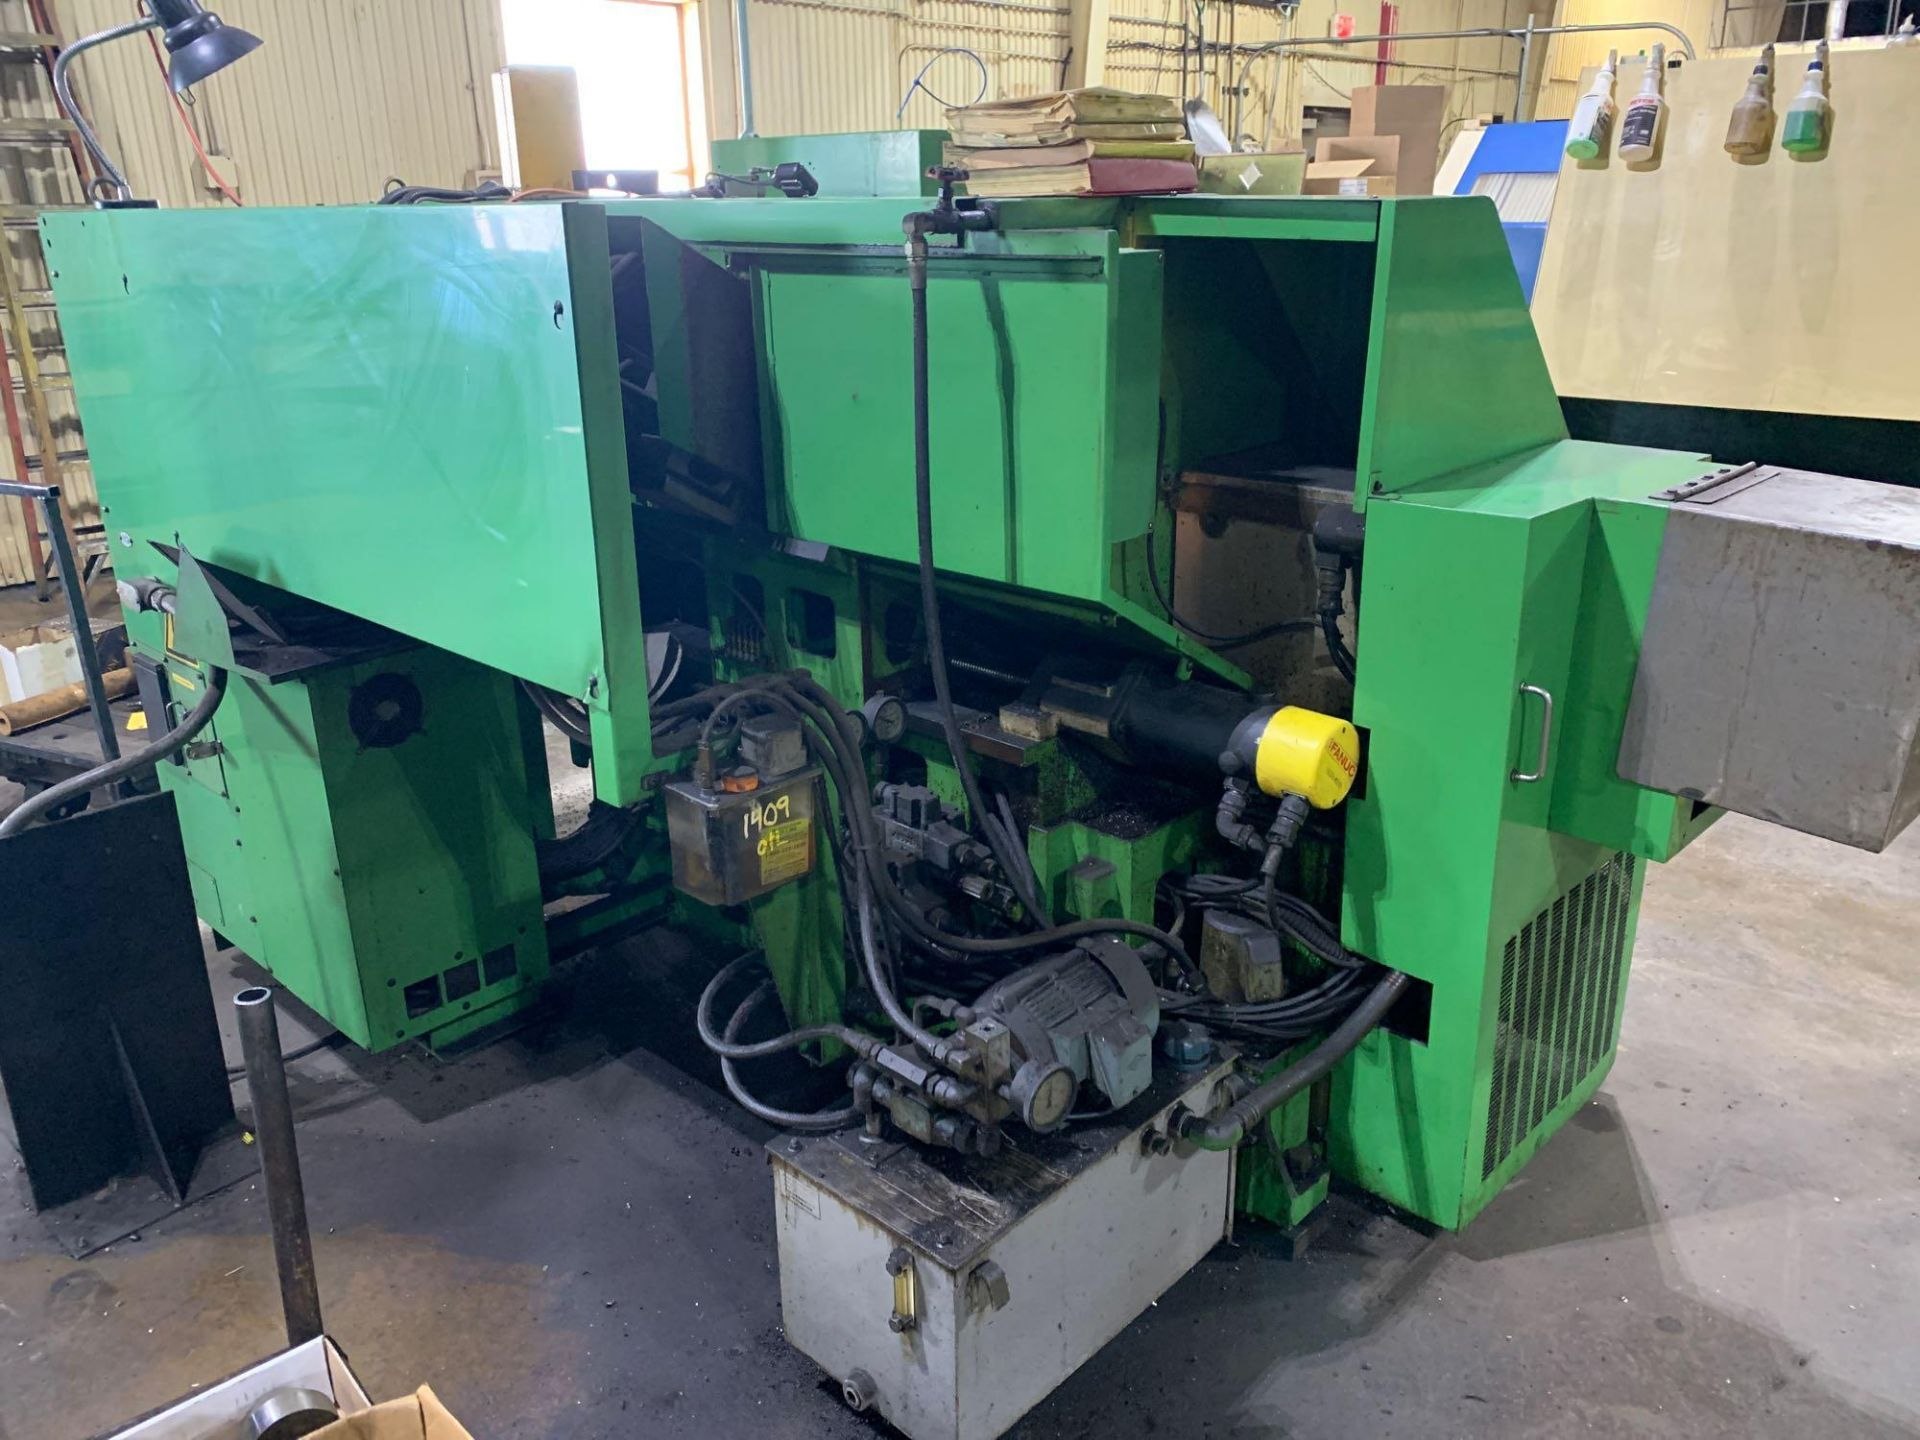 IKEGAI AX-15Z CNC Slant Bed Turning Center Serial Number: 50130V 2-Axis Machine Fanuc 10T Control 12 - Image 5 of 18